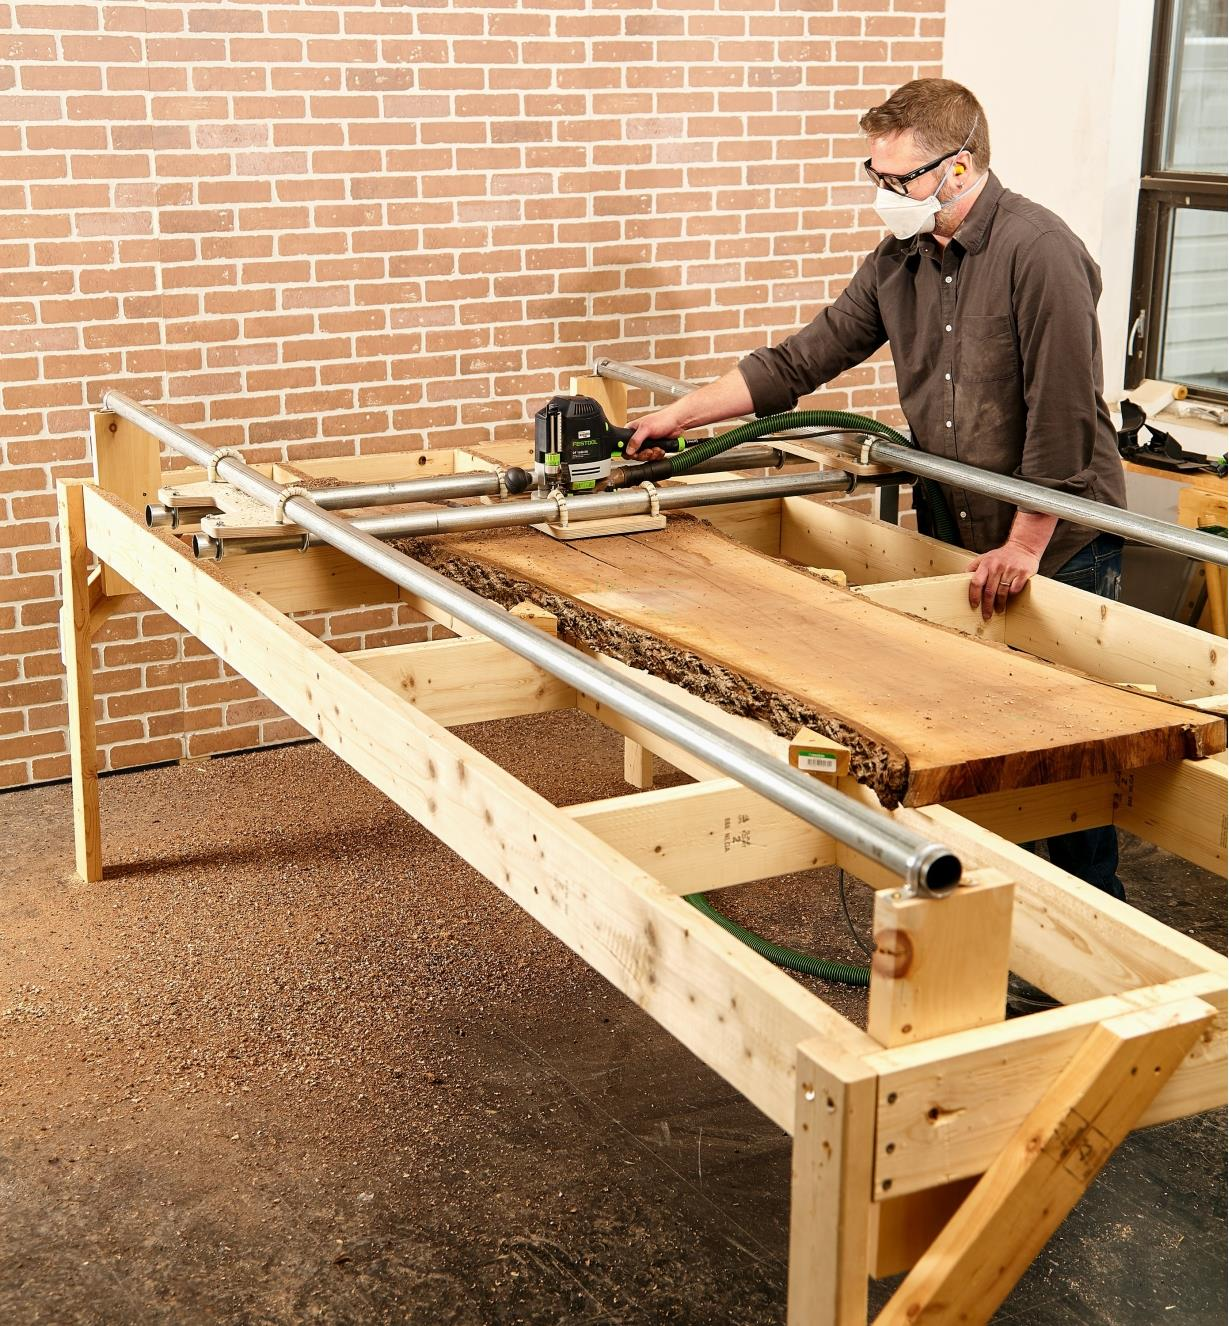 A wood slab is flattened using a router and the assembled router sled